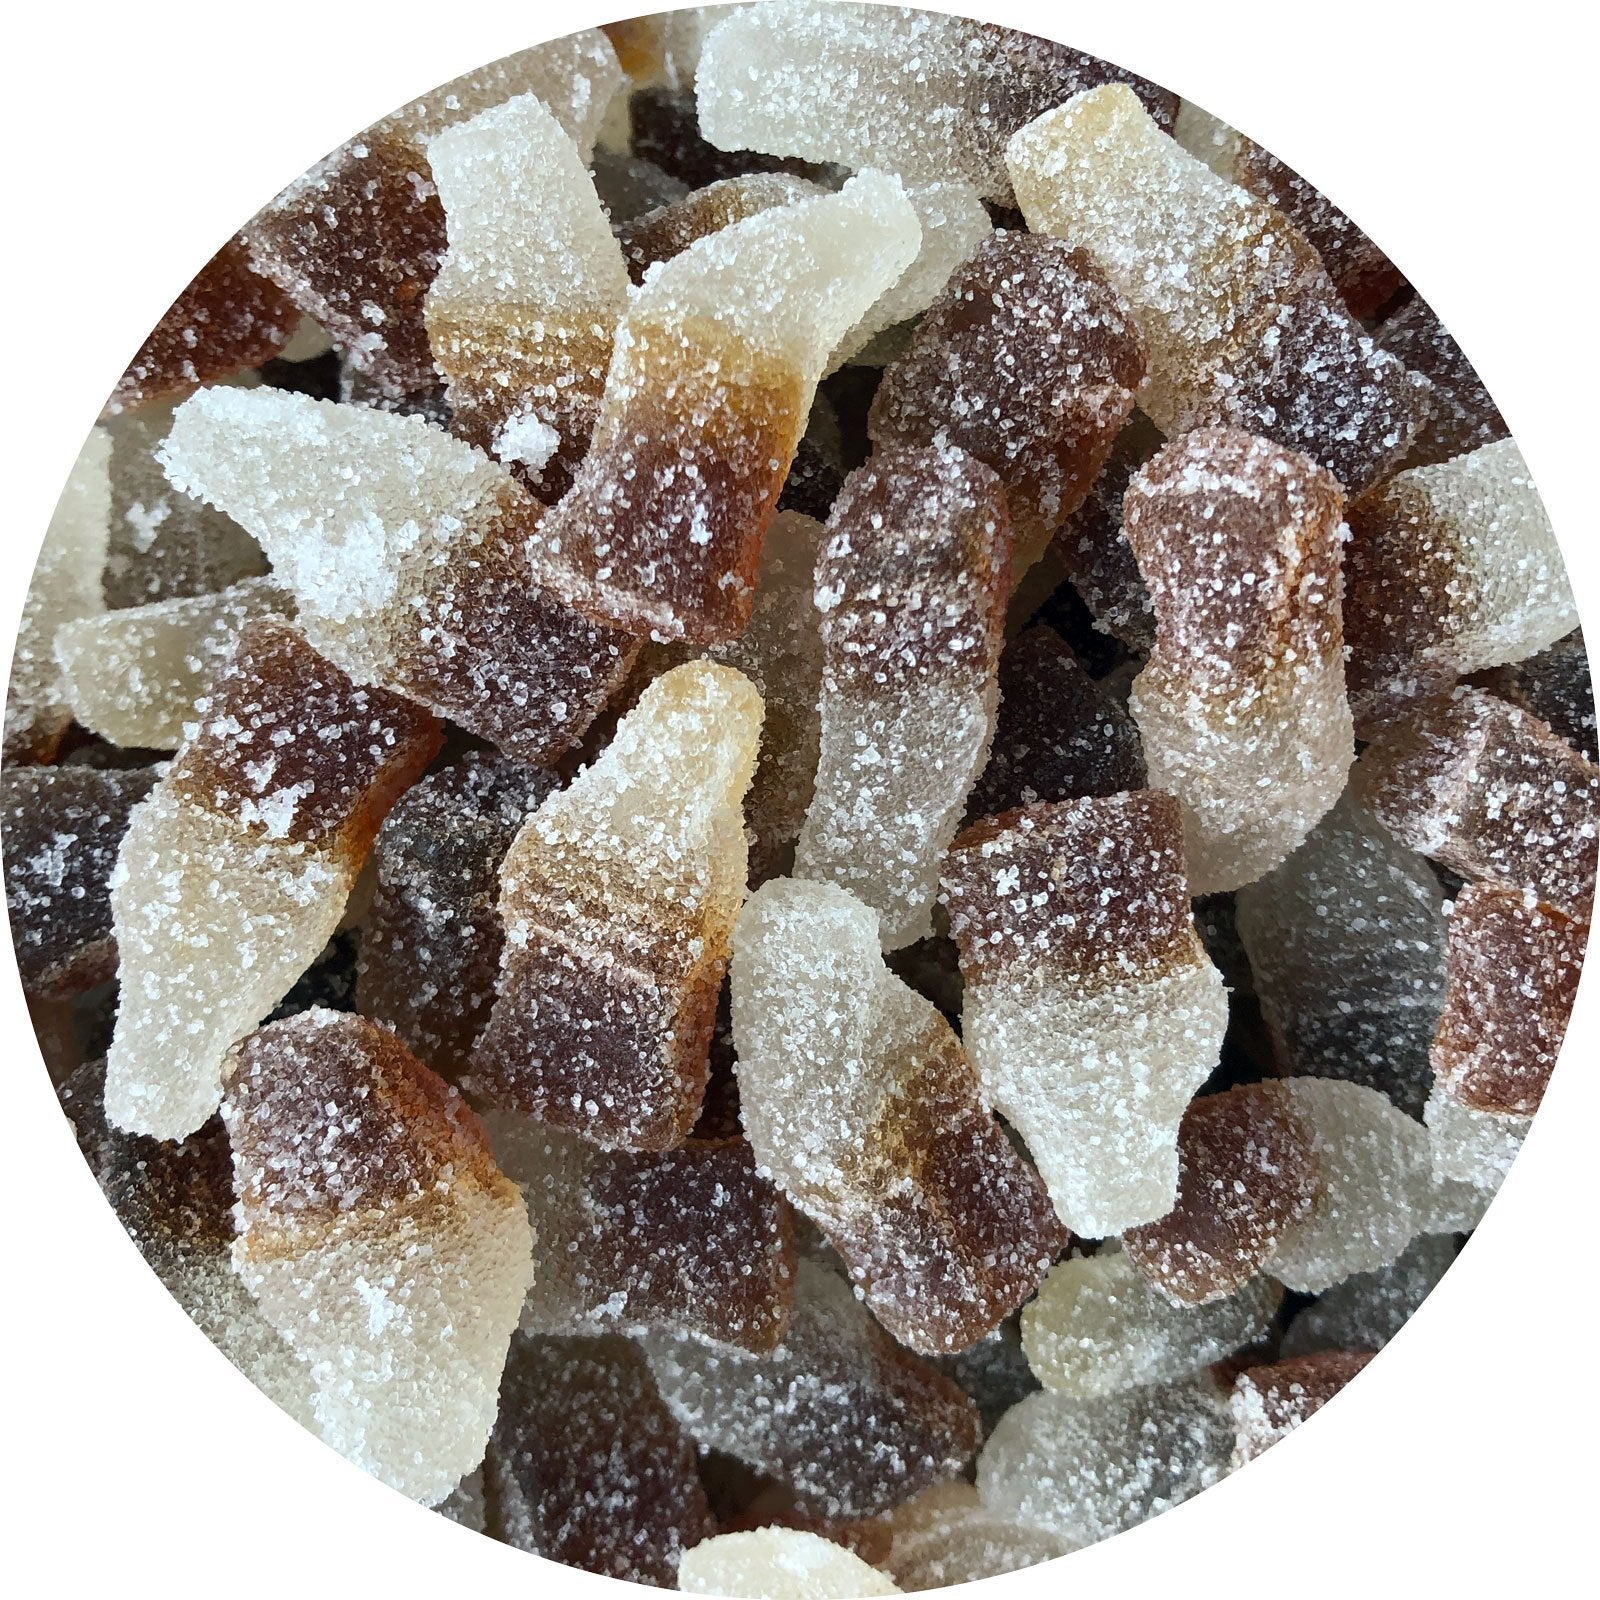 Fizzy Cola Bottles - Vegan Sweets